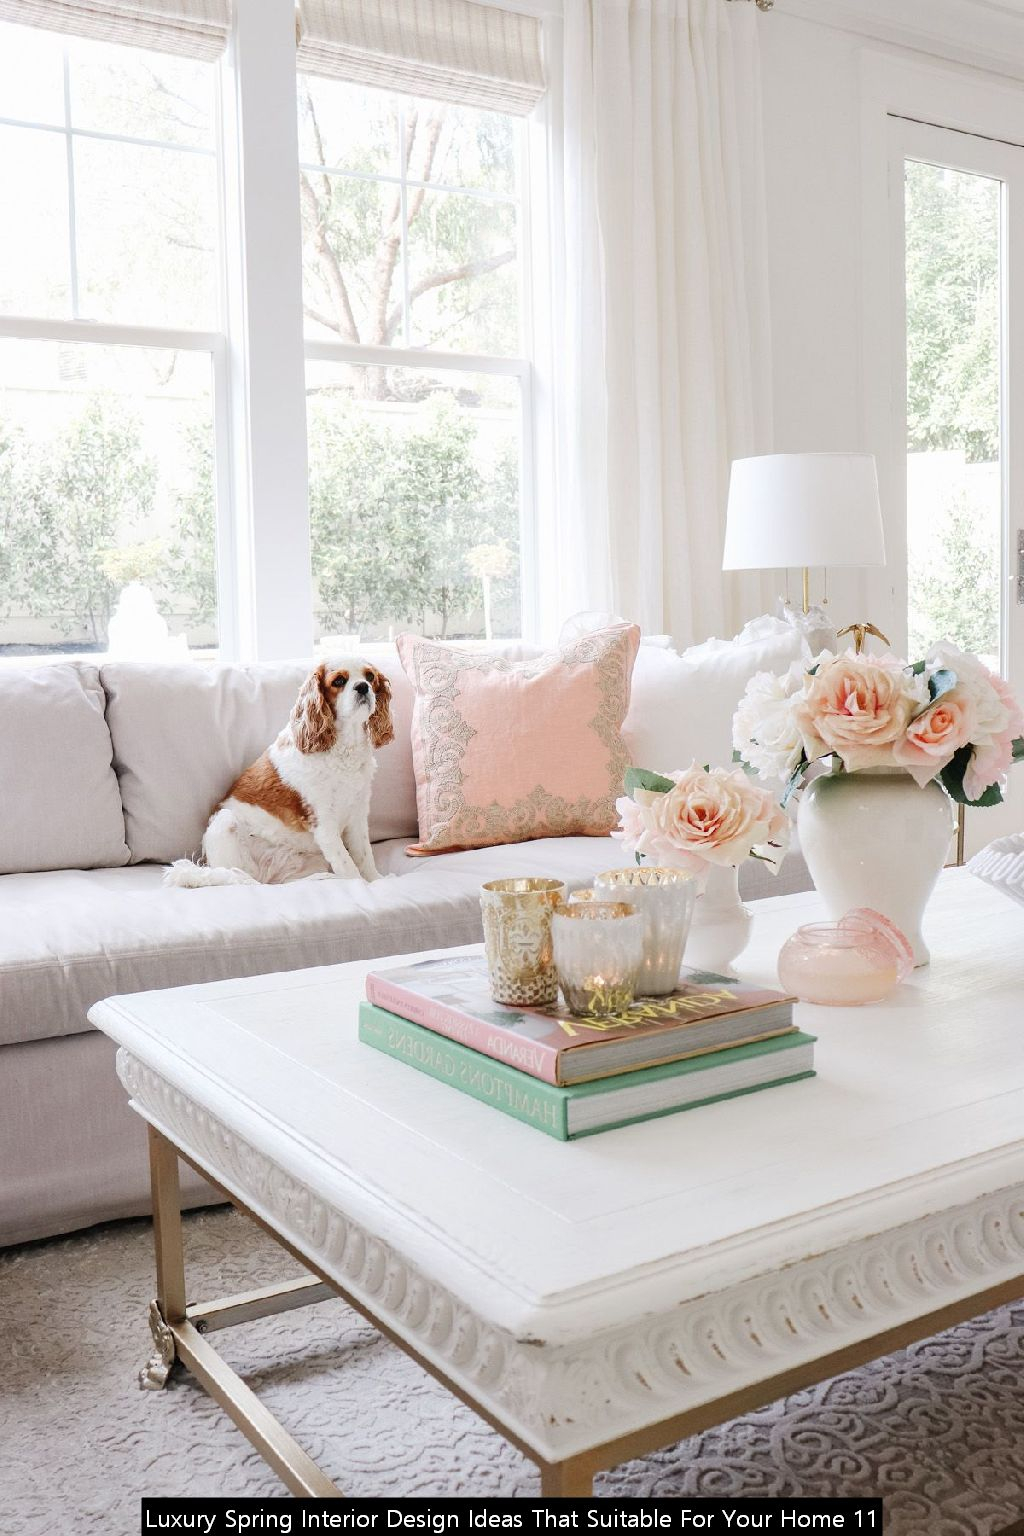 Luxury Spring Interior Design Ideas That Suitable For Your Home 11